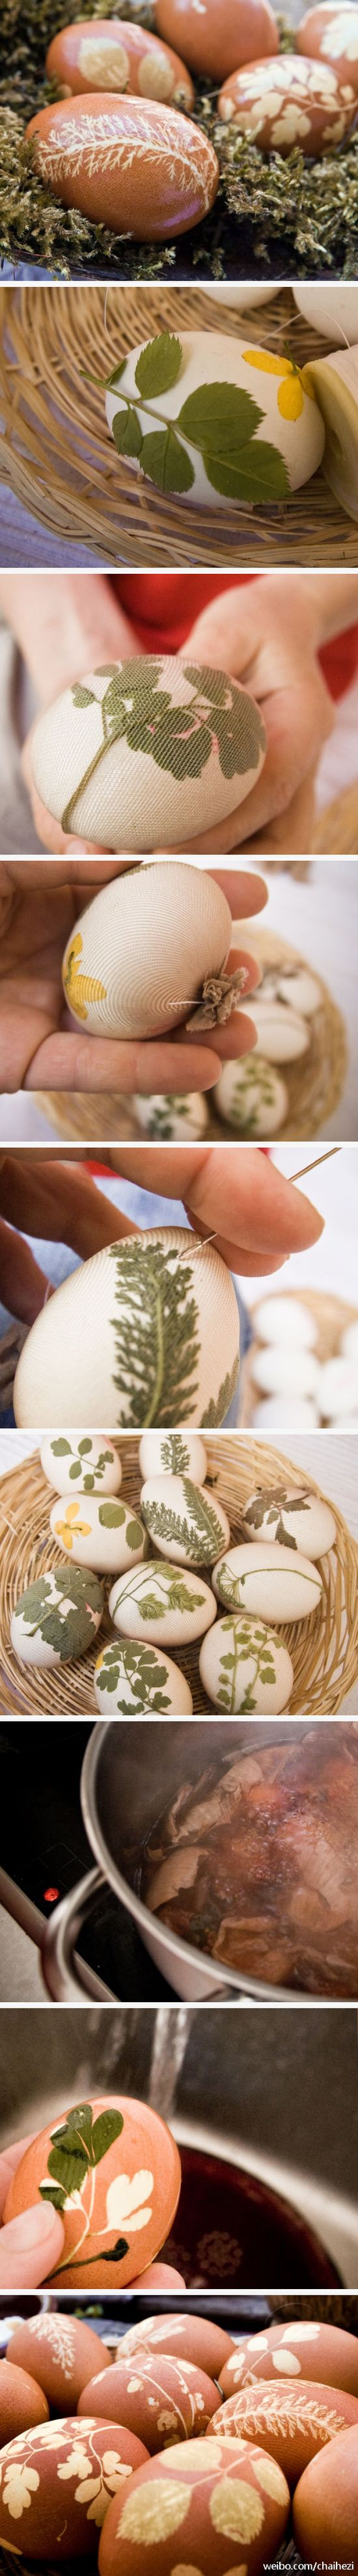 Eggs-natural. No dyes needed.